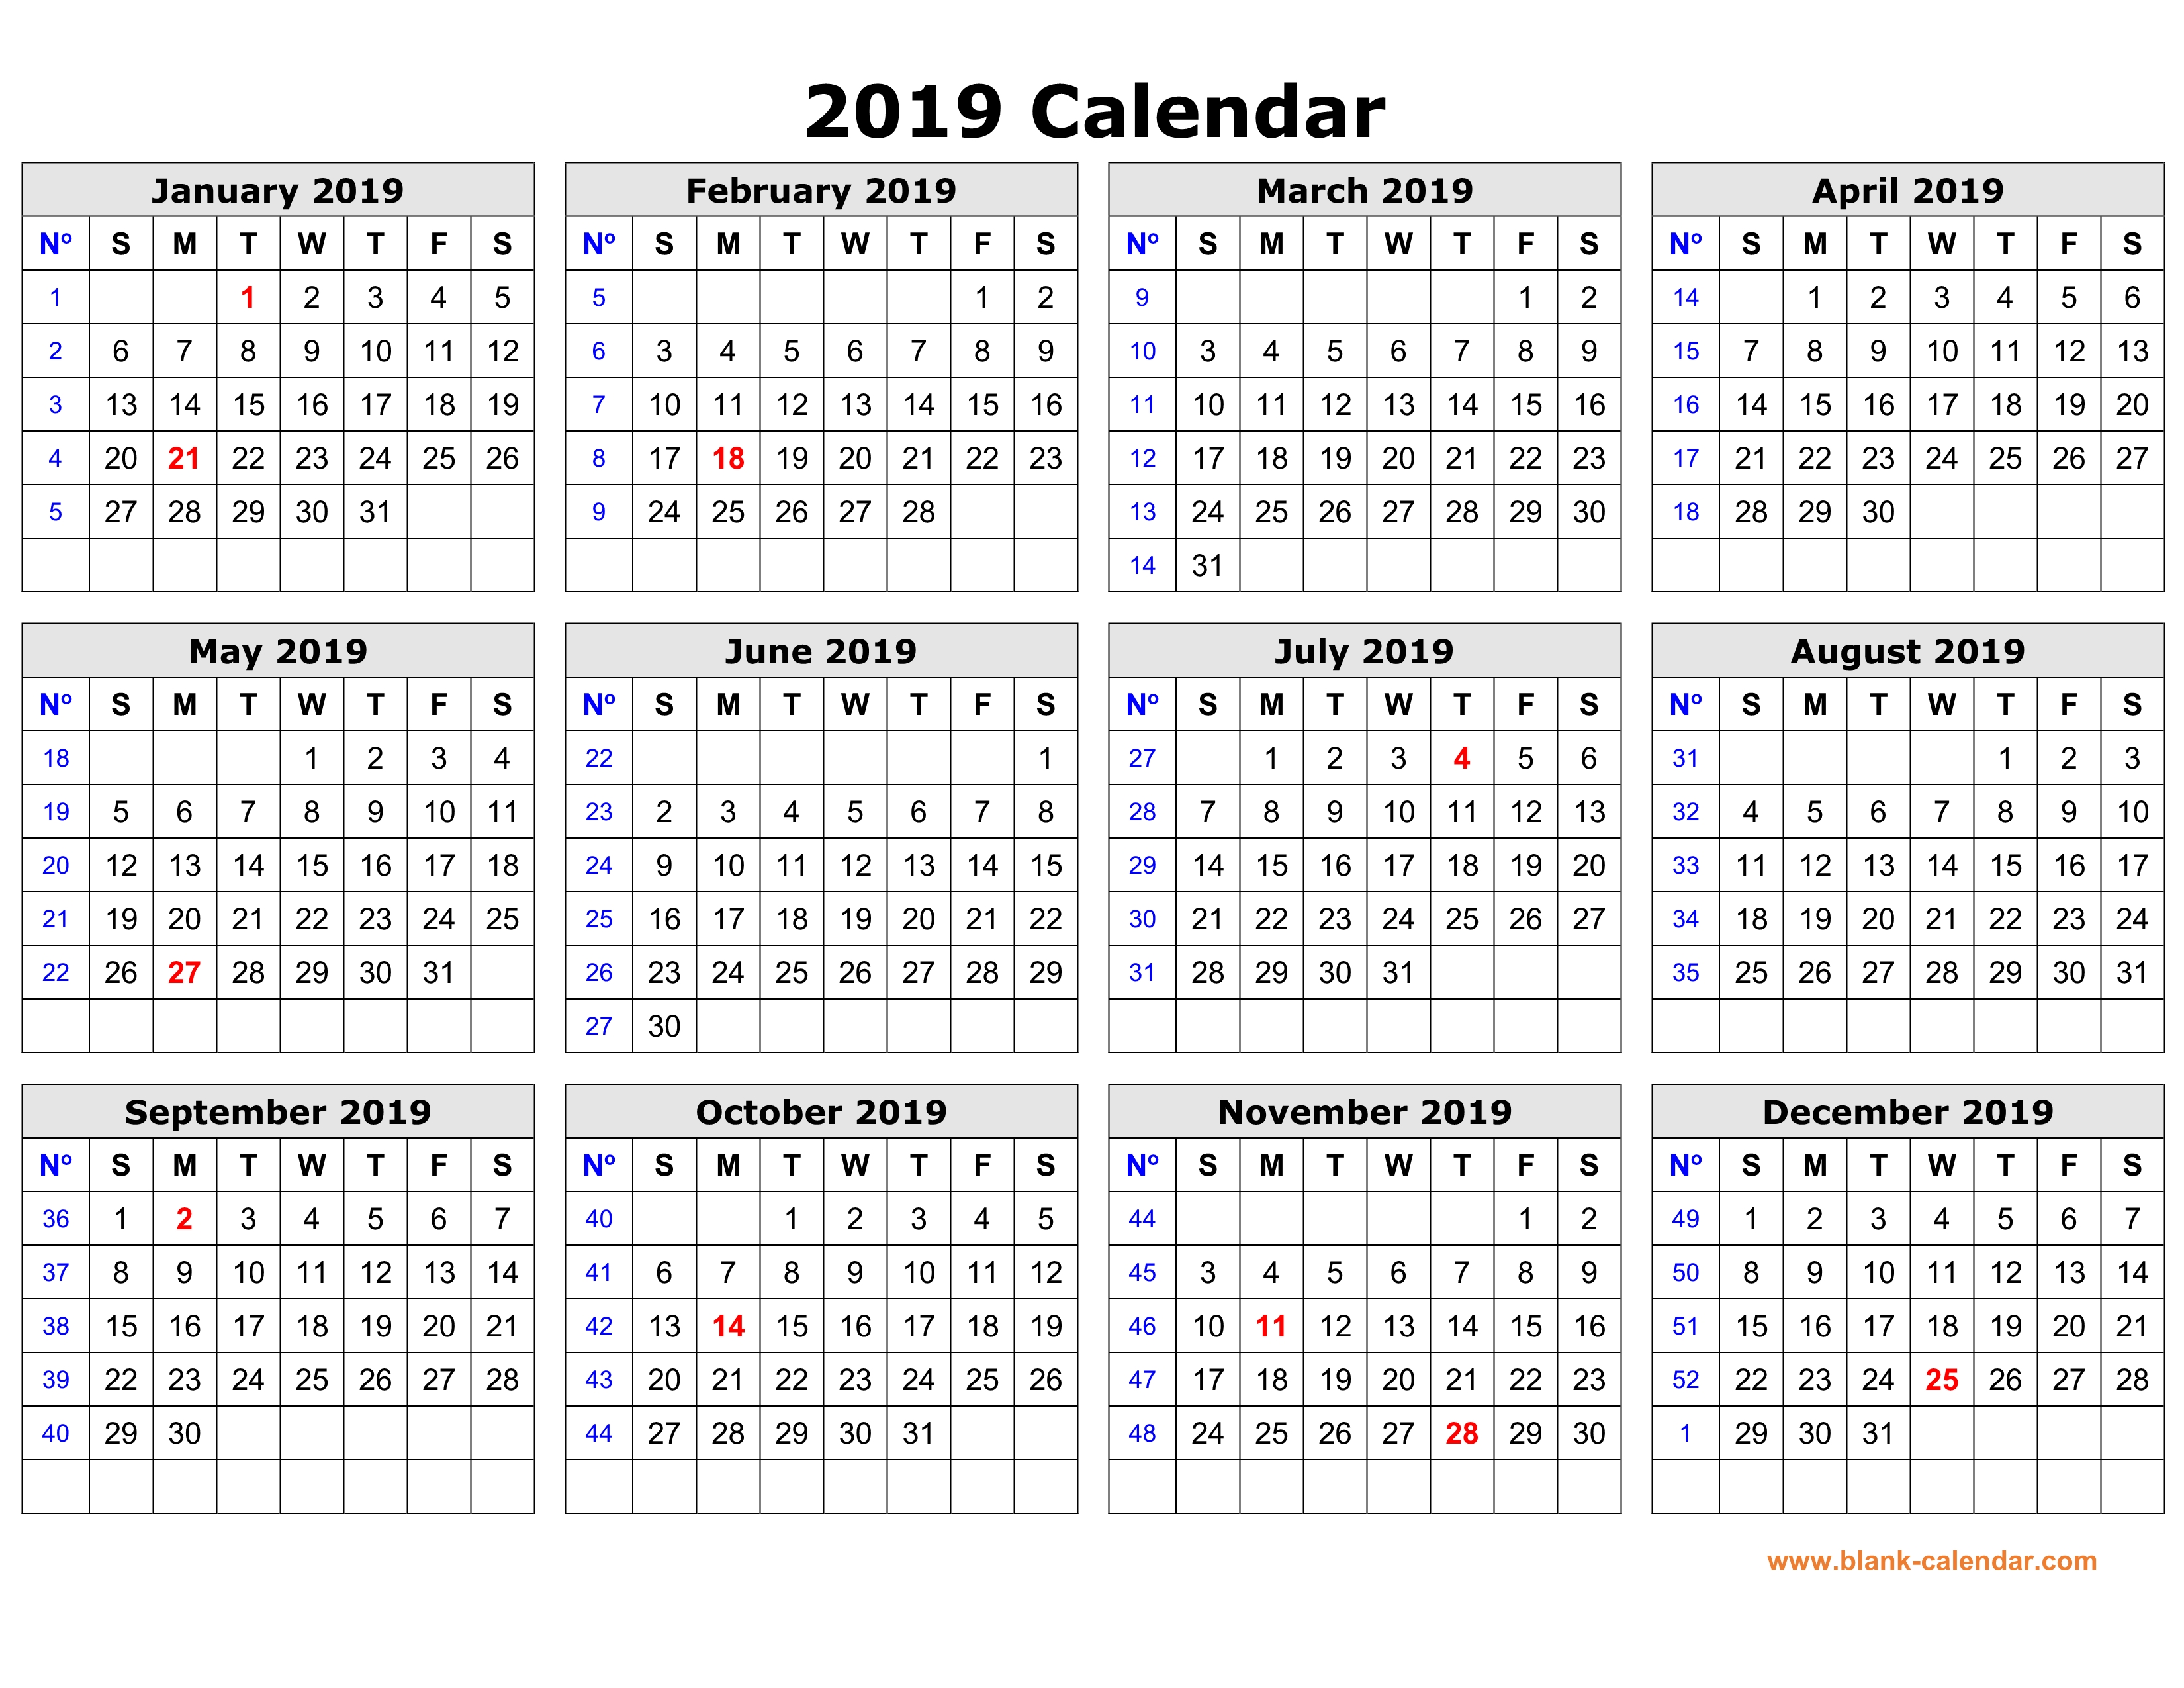 Free Printable 2019 Year Calendar With Holidays Download In One Page Clean Design